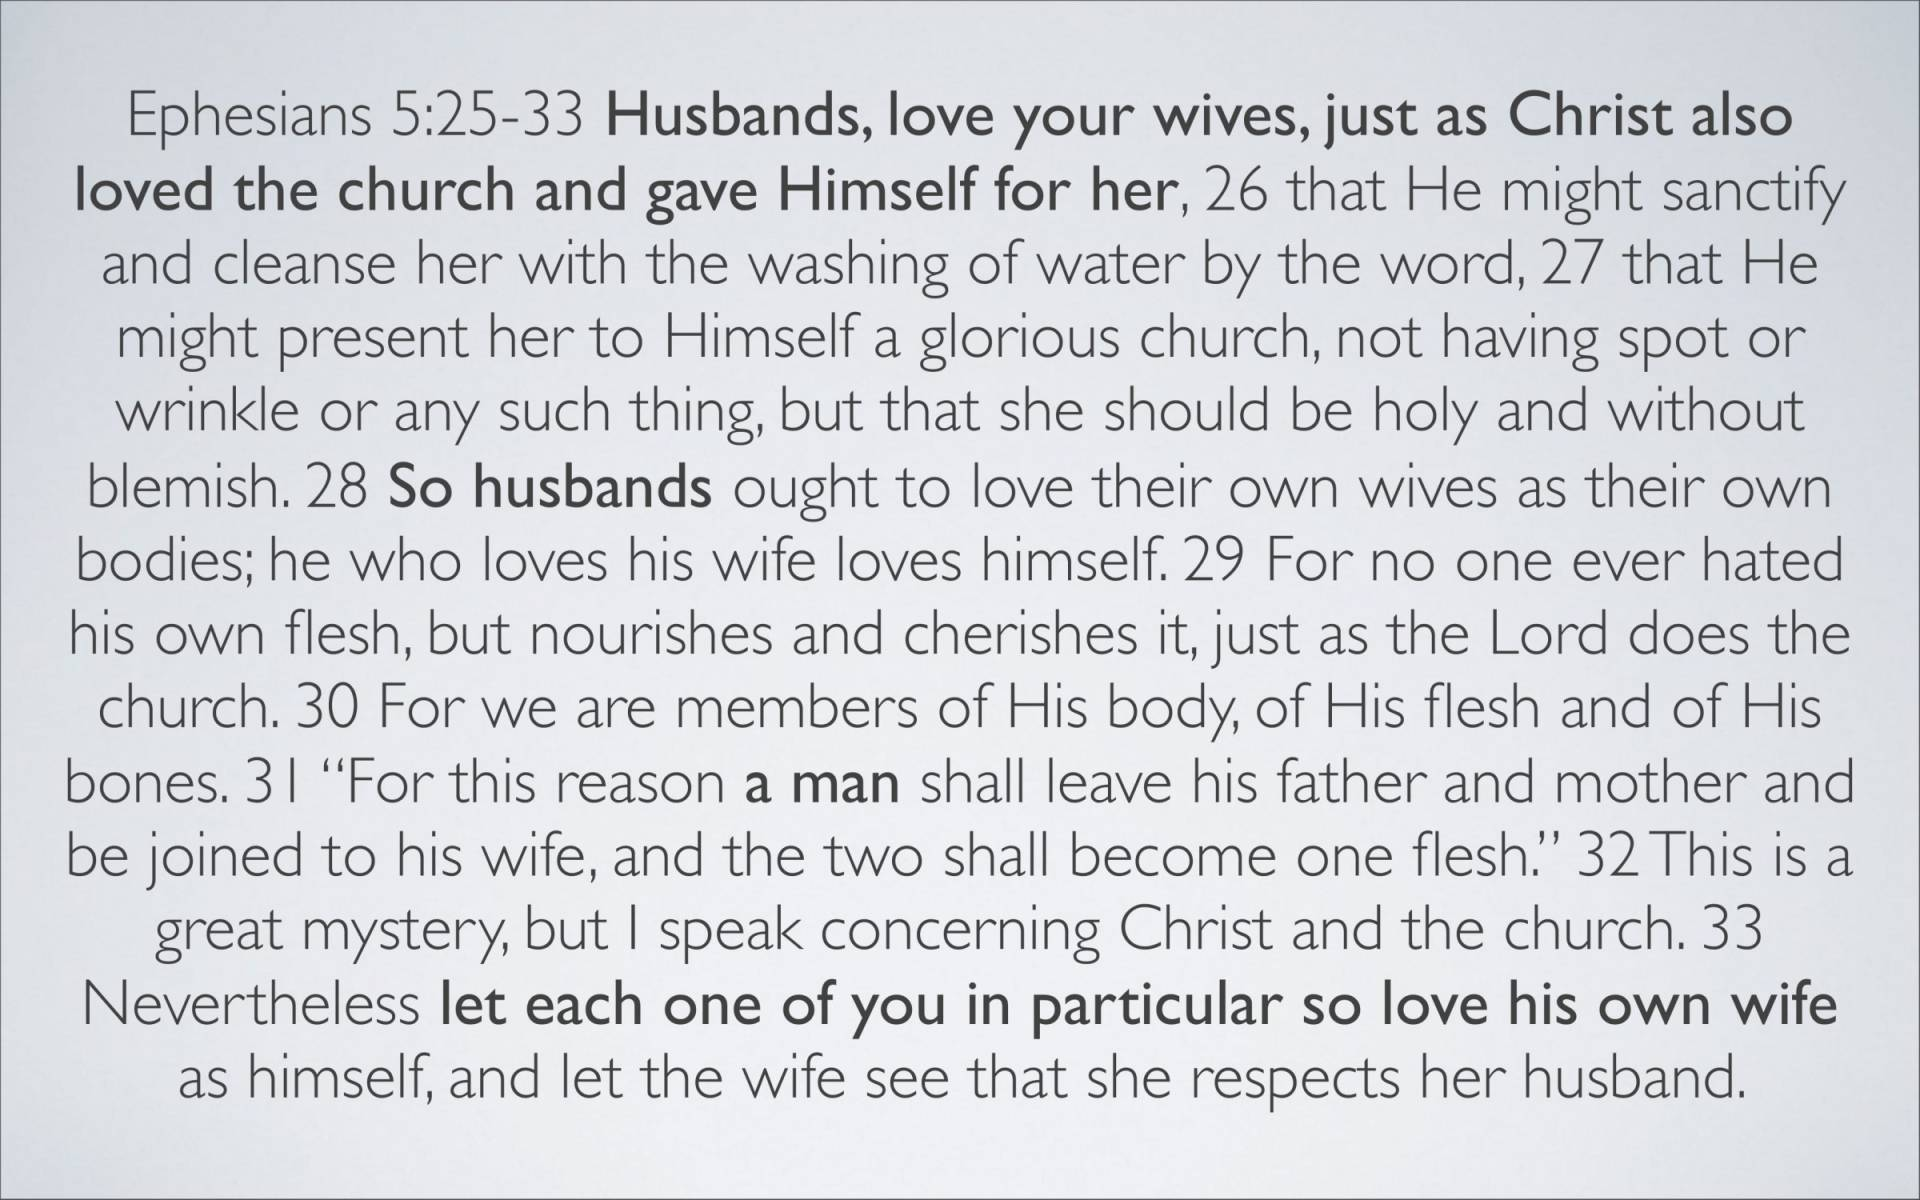 BC&D-37 - Lesson 15-1 - The Marriage Relationship - Husbands-08